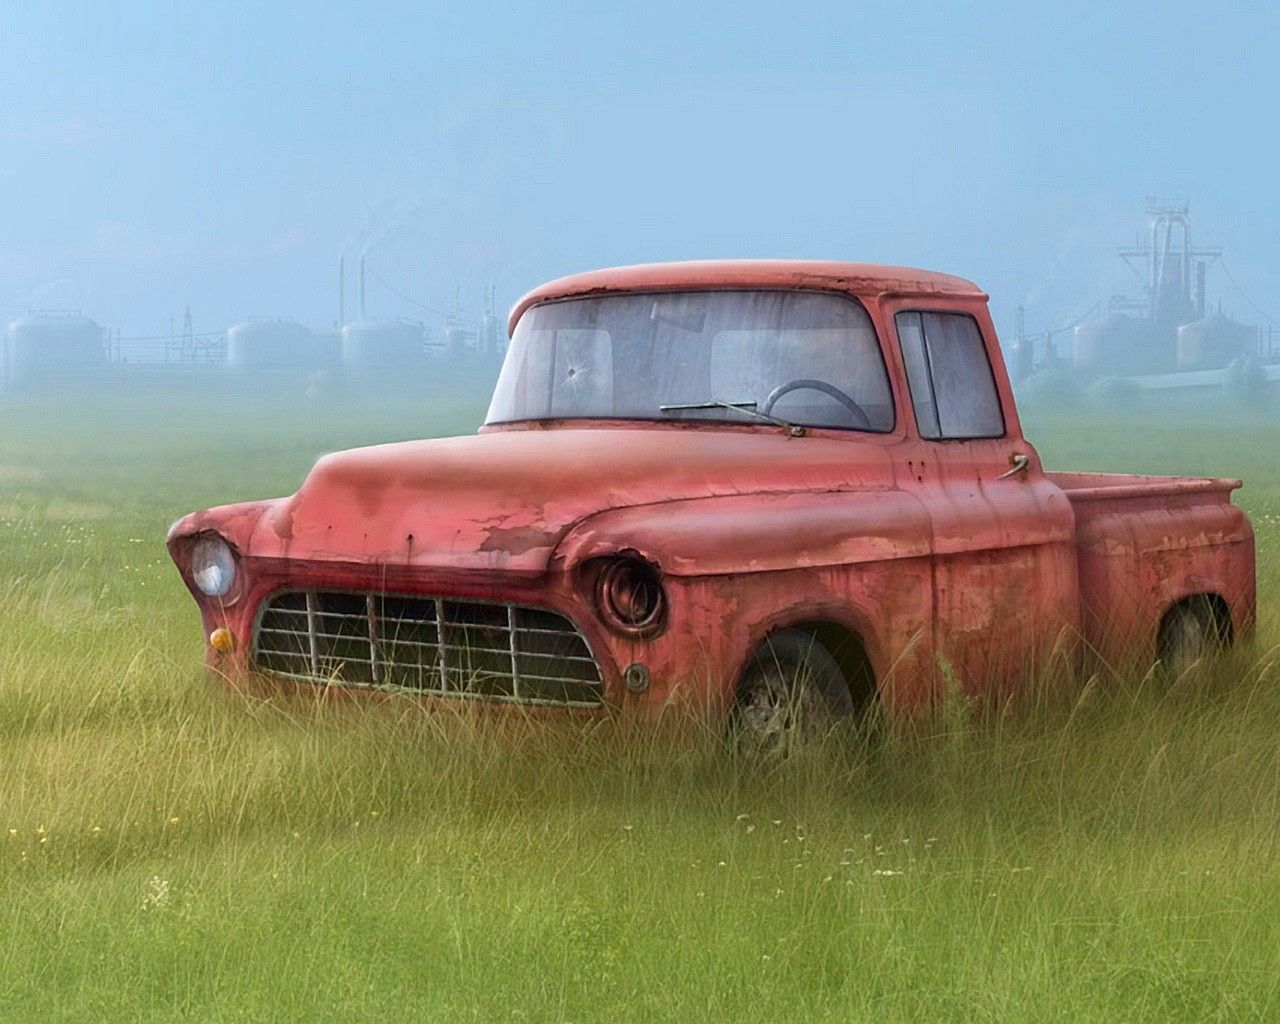 Download Wallpaper Truck Grass Drawing Broken Other Resolution 1280x1024 Truck Art Old Cars Old Pickup